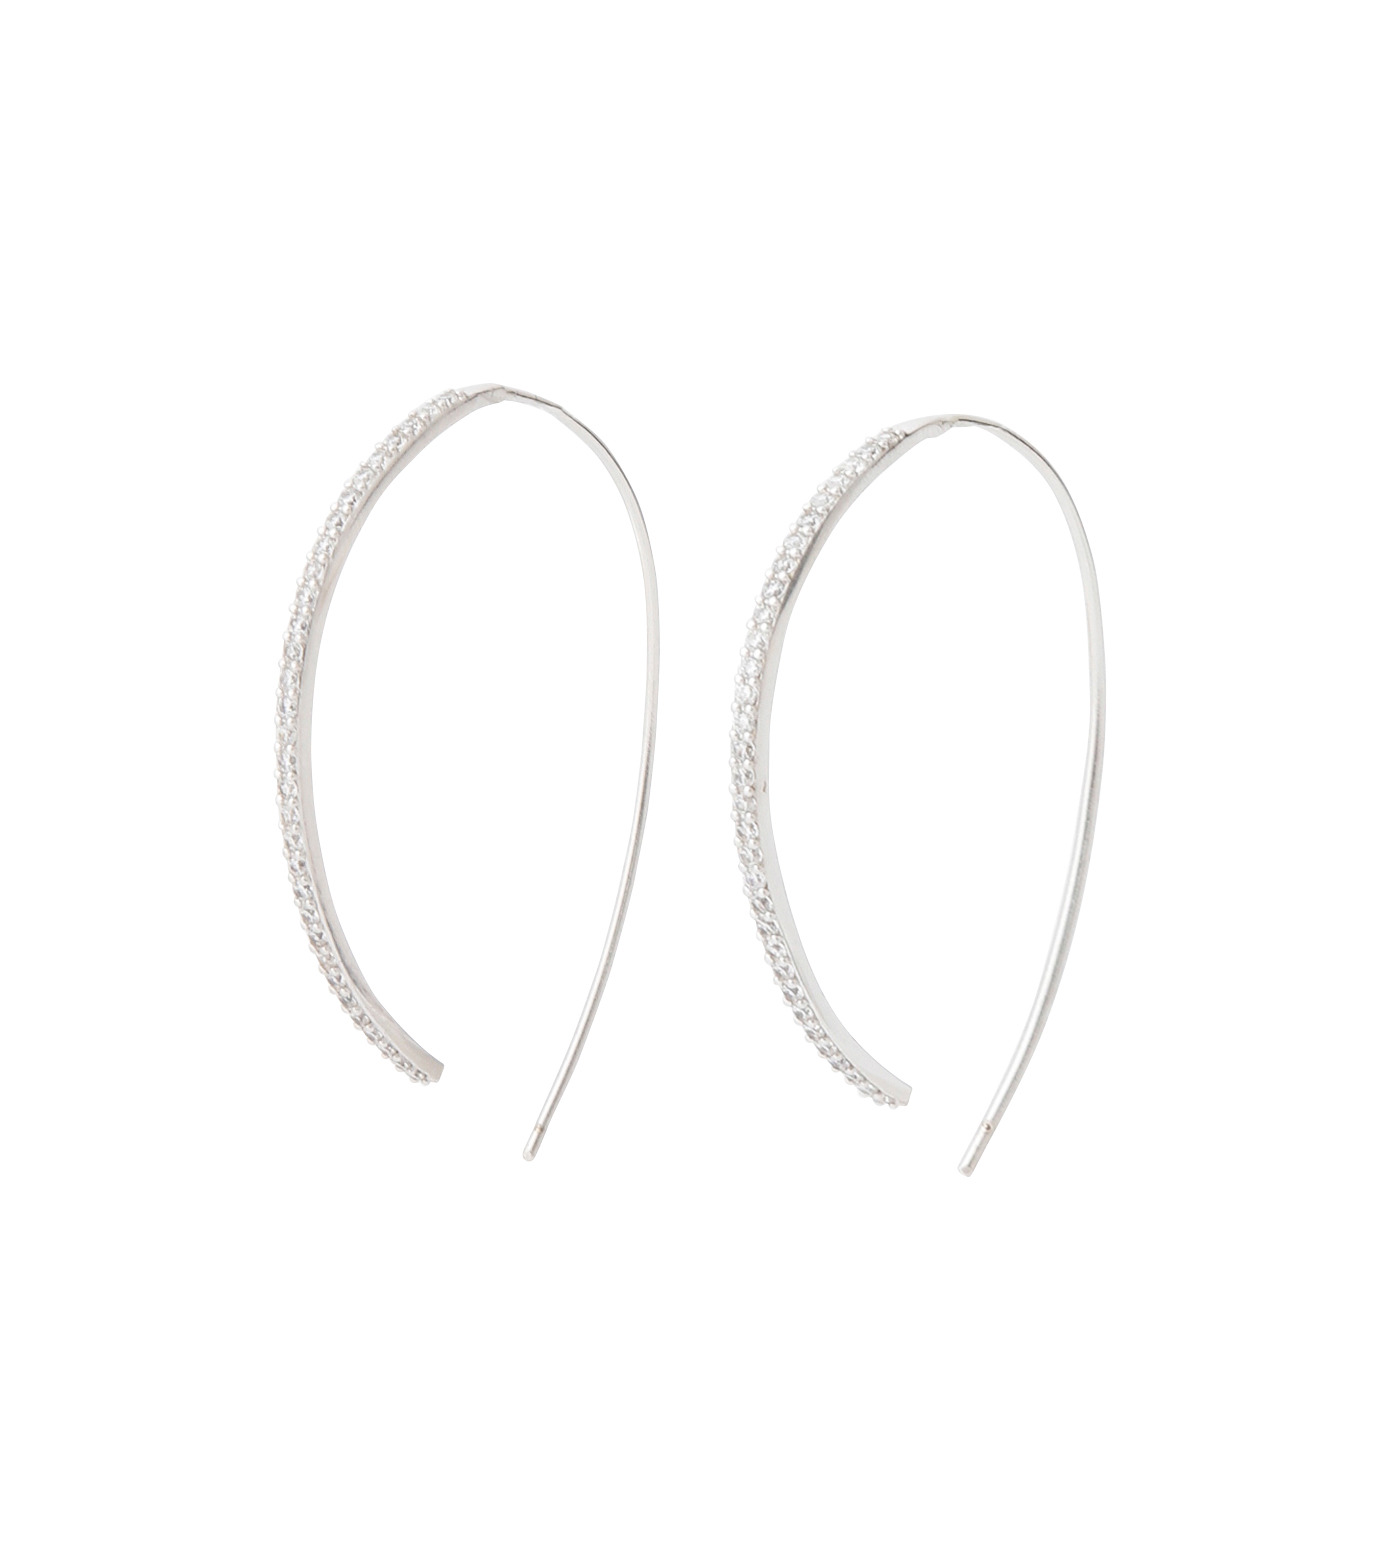 Fallon(ファロン)のPave Threaded Hoops-SILVER-FE11626-1 拡大詳細画像1